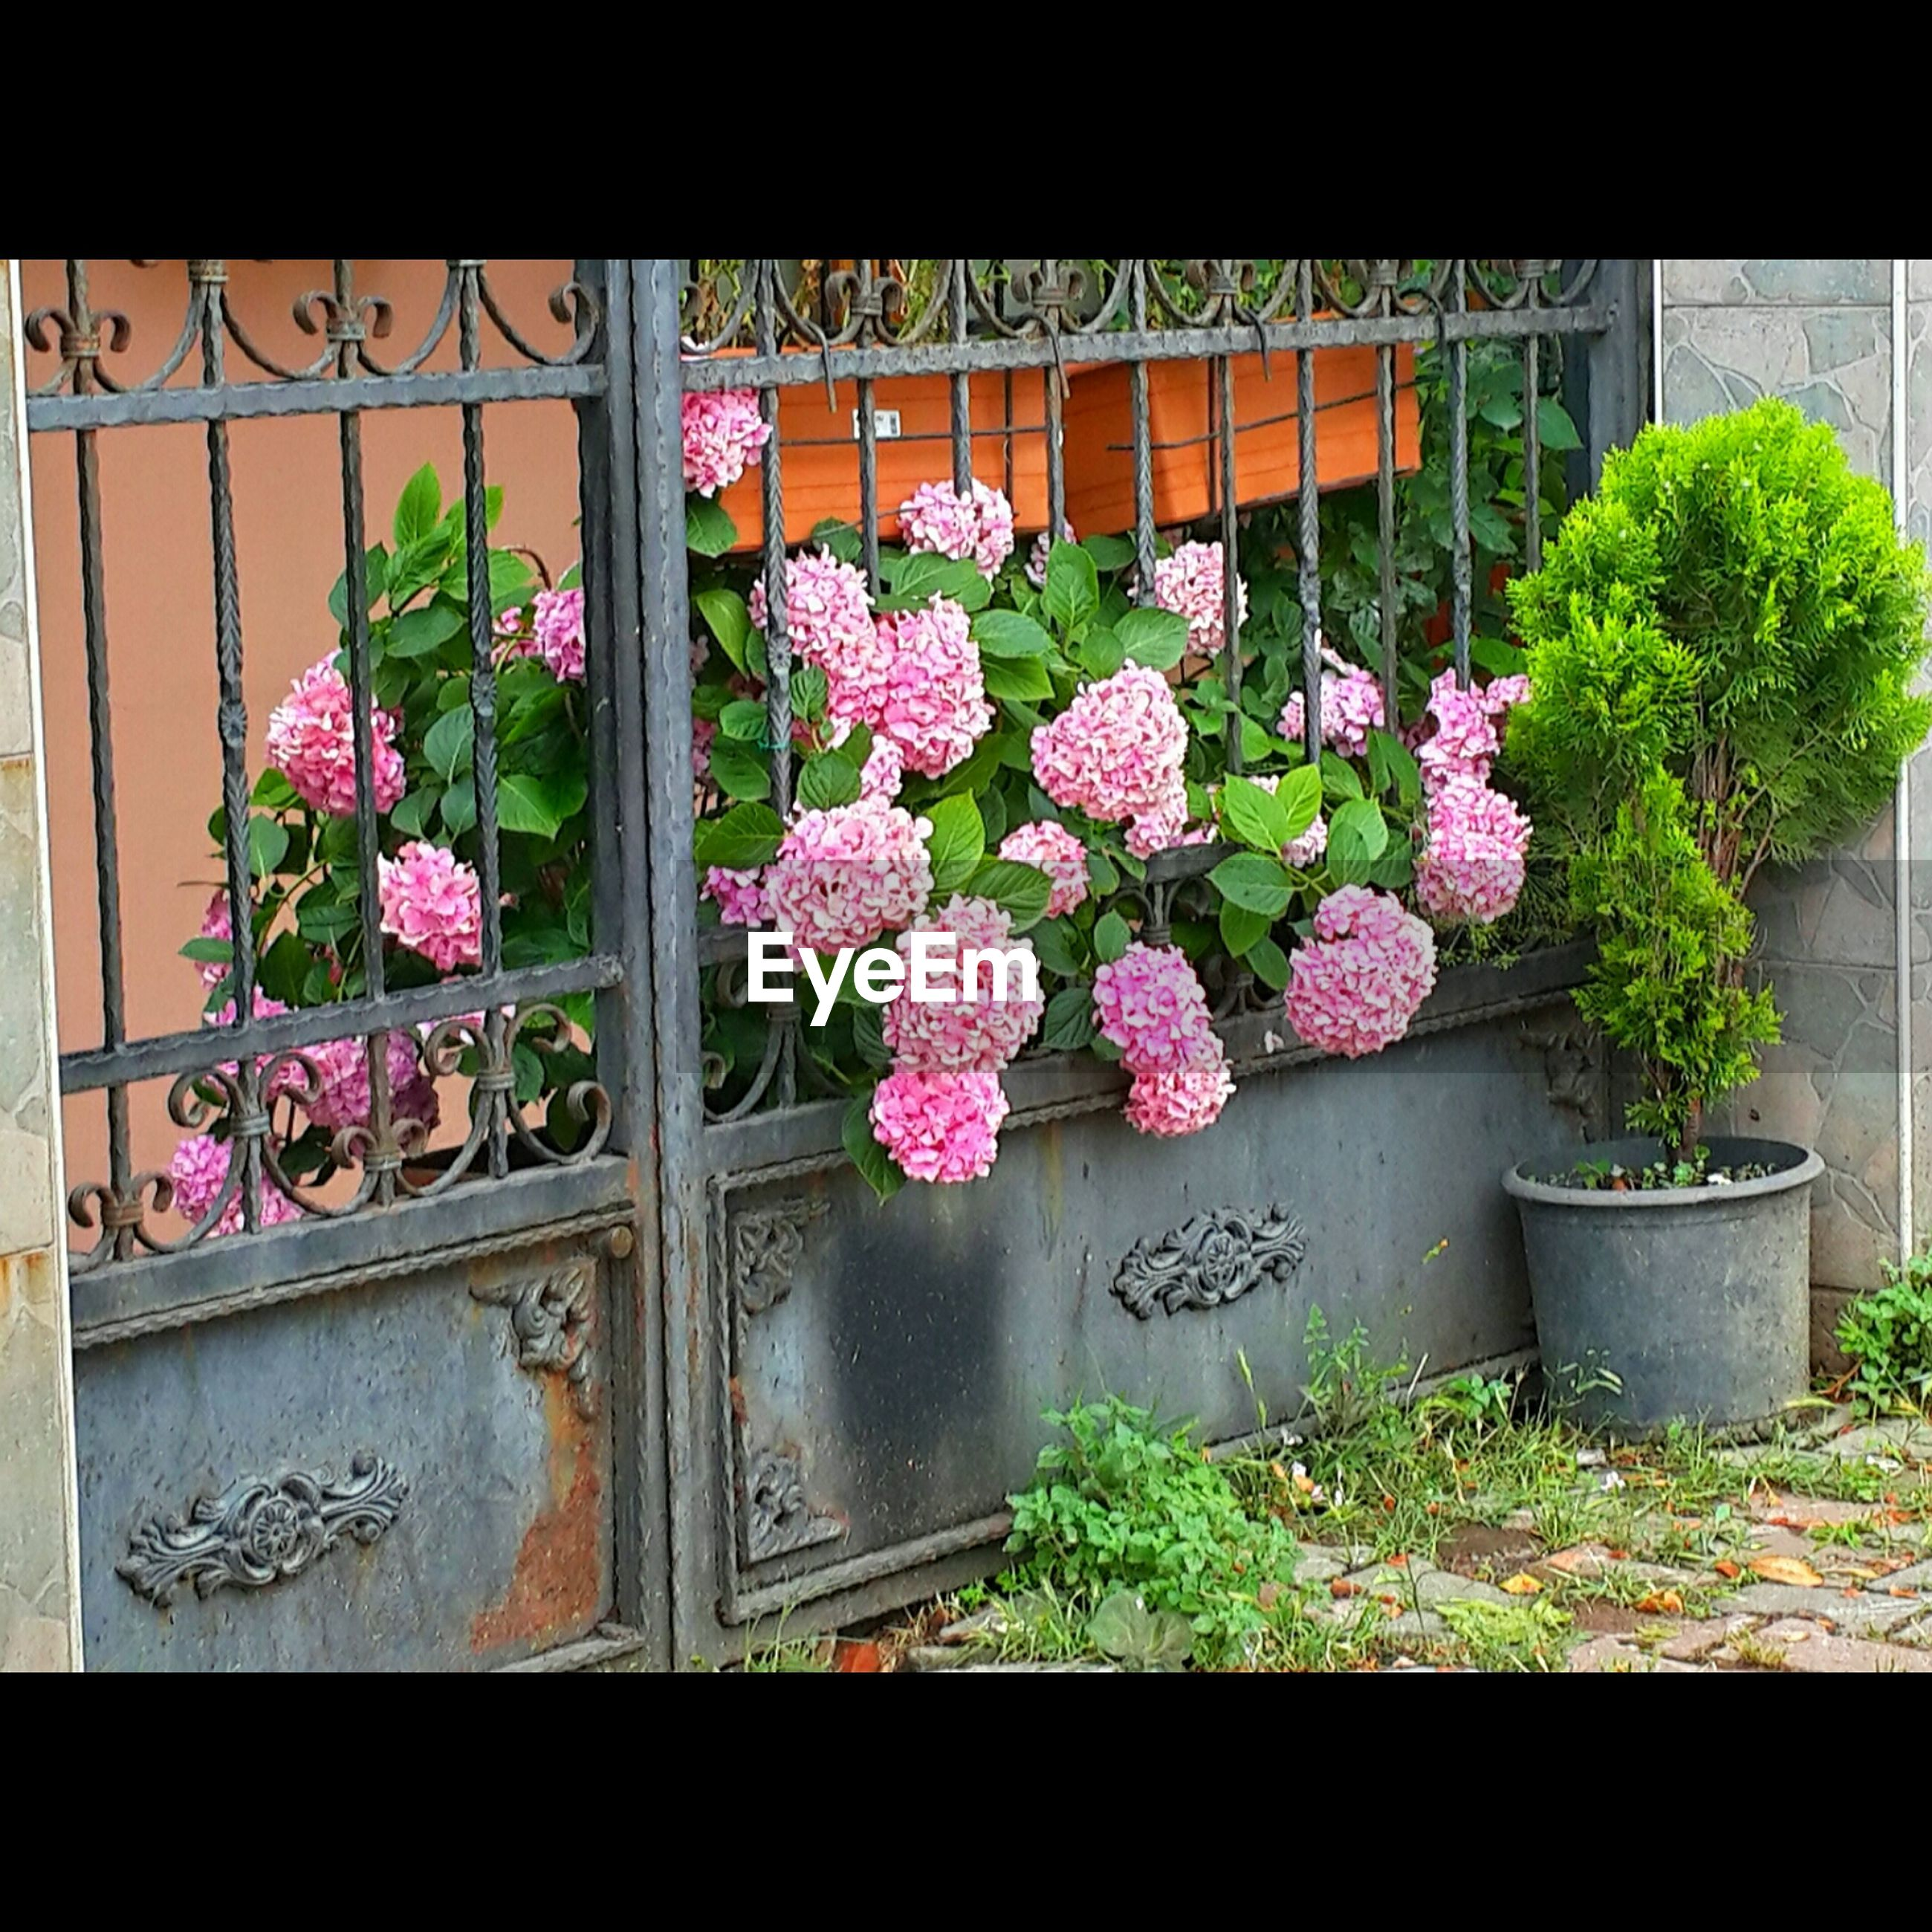 flower, freshness, growth, plant, fragility, potted plant, beauty in nature, nature, flower pot, built structure, petal, blooming, pink color, architecture, leaf, blossom, in bloom, building exterior, house, window